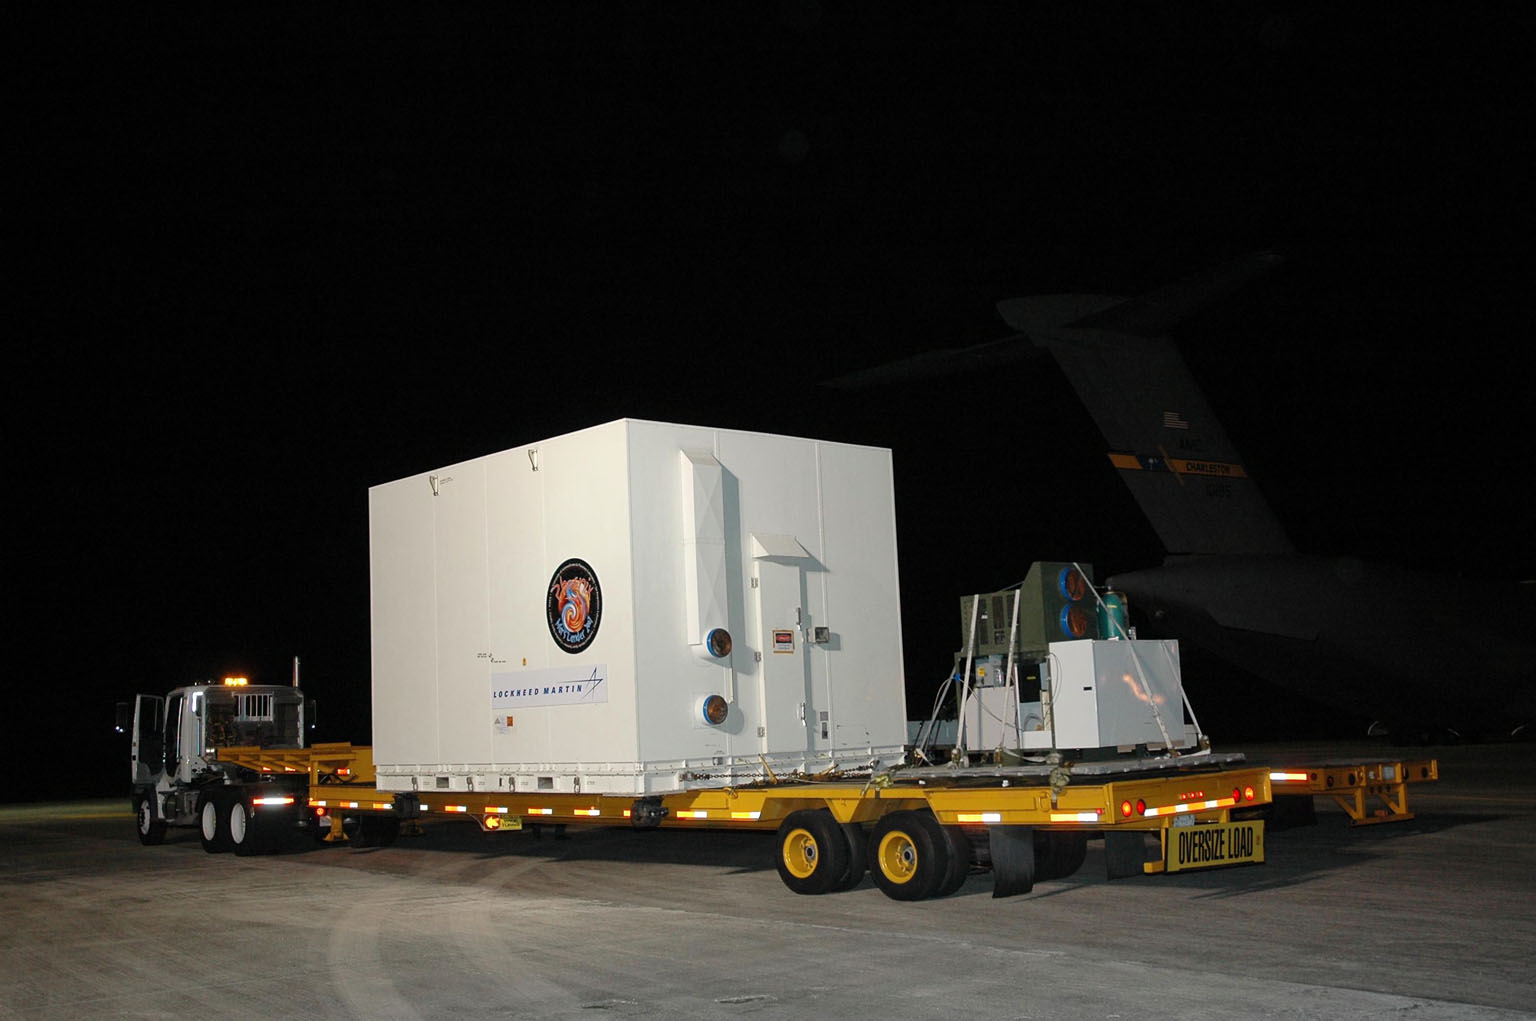 KENNEDY SPACE CENTER, FLA. -- After its arrival at Kennedy Space Center's Shuttle Landing Facility, the crated Phoenix spacecraft is secure on a flat bed truck for transportation to the Payload Hazardous Servicing Facility. The Phoenix mission is the first project in NASA's first openly competed program of Mars Scout missions. Phoenix will land in icy soils near the north polar permanent ice cap of Mars and explore the history of the water in these soils and any associated rocks, while monitoring polar climate. Landing is planned in May 2008 on arctic ground where a mission currently in orbit, Mars Odyssey, has detected high concentrations of ice just beneath the top layer of soil. It will serve as NASA's first exploration of a potential modern habitat on Mars and open the door to a renewed search for carbon-bearing compounds, last attempted with NASA?s Viking missions in the 1970s. A stereo color camera and a weather station will study the surrounding environment while the other instruments check excavated soil samples for water, organic chemicals and conditions that could indicate whether the site was ever hospitable to life. Microscopes can reveal features as small as one one-thousandth the width of a human hair. Launch of Phoenix aboard a Delta II rocket is targeted for Aug. 3 from Cape Canaveral Air Force Station in Florida. Photo credit: NASA/Charisse Nahser